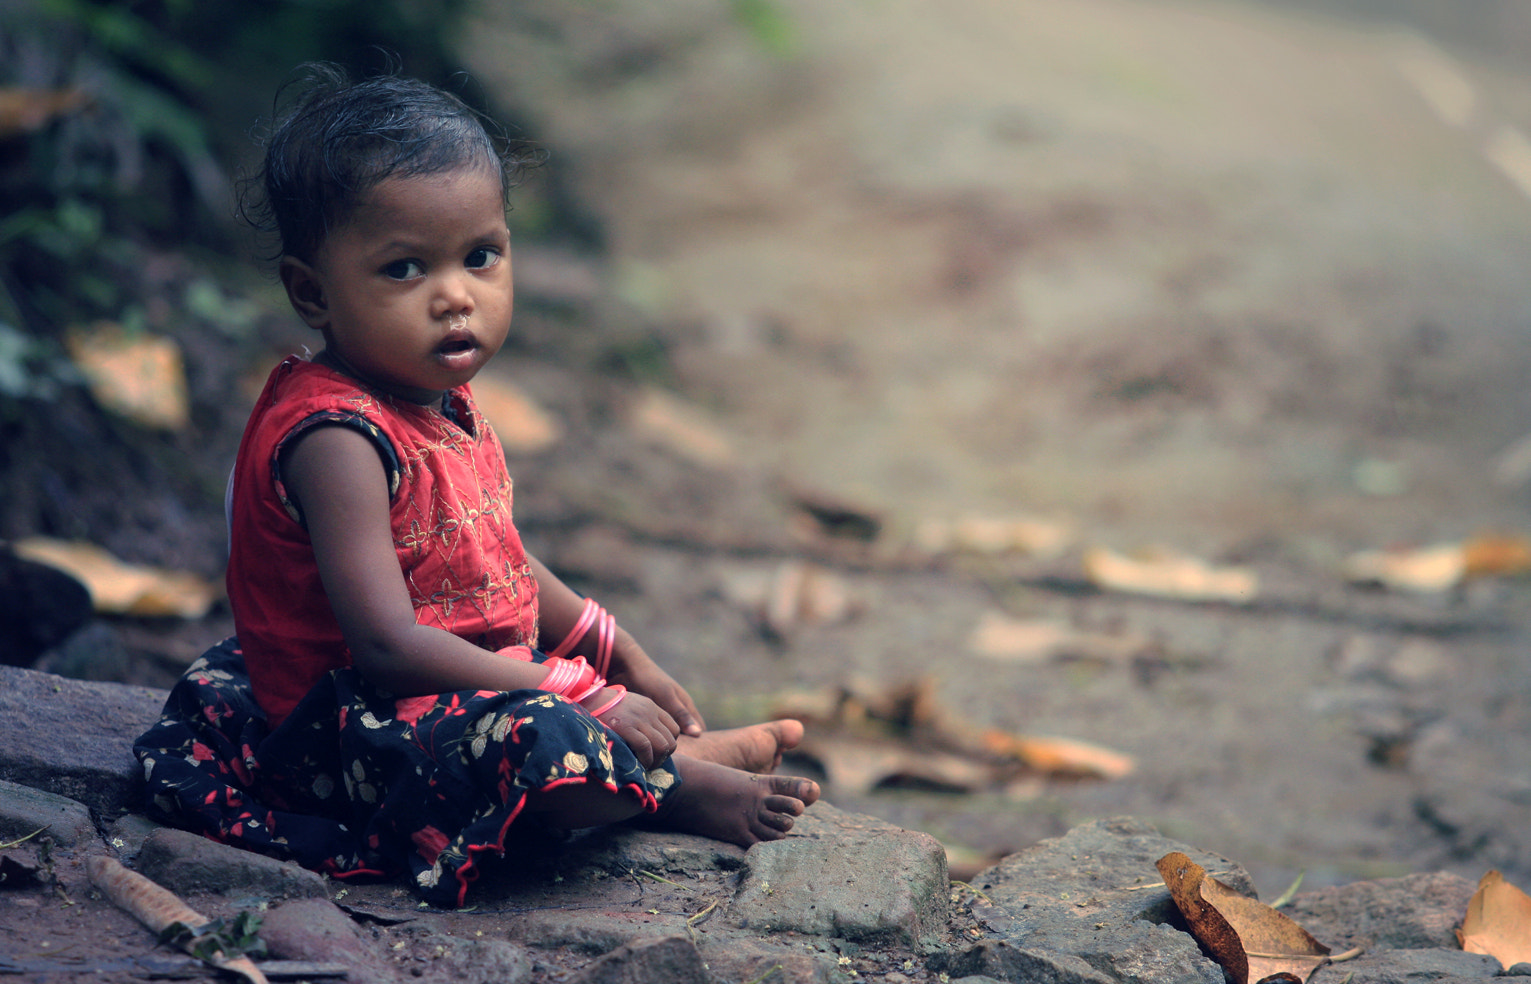 Photograph Untitled by Shahul Kollengode on 500px